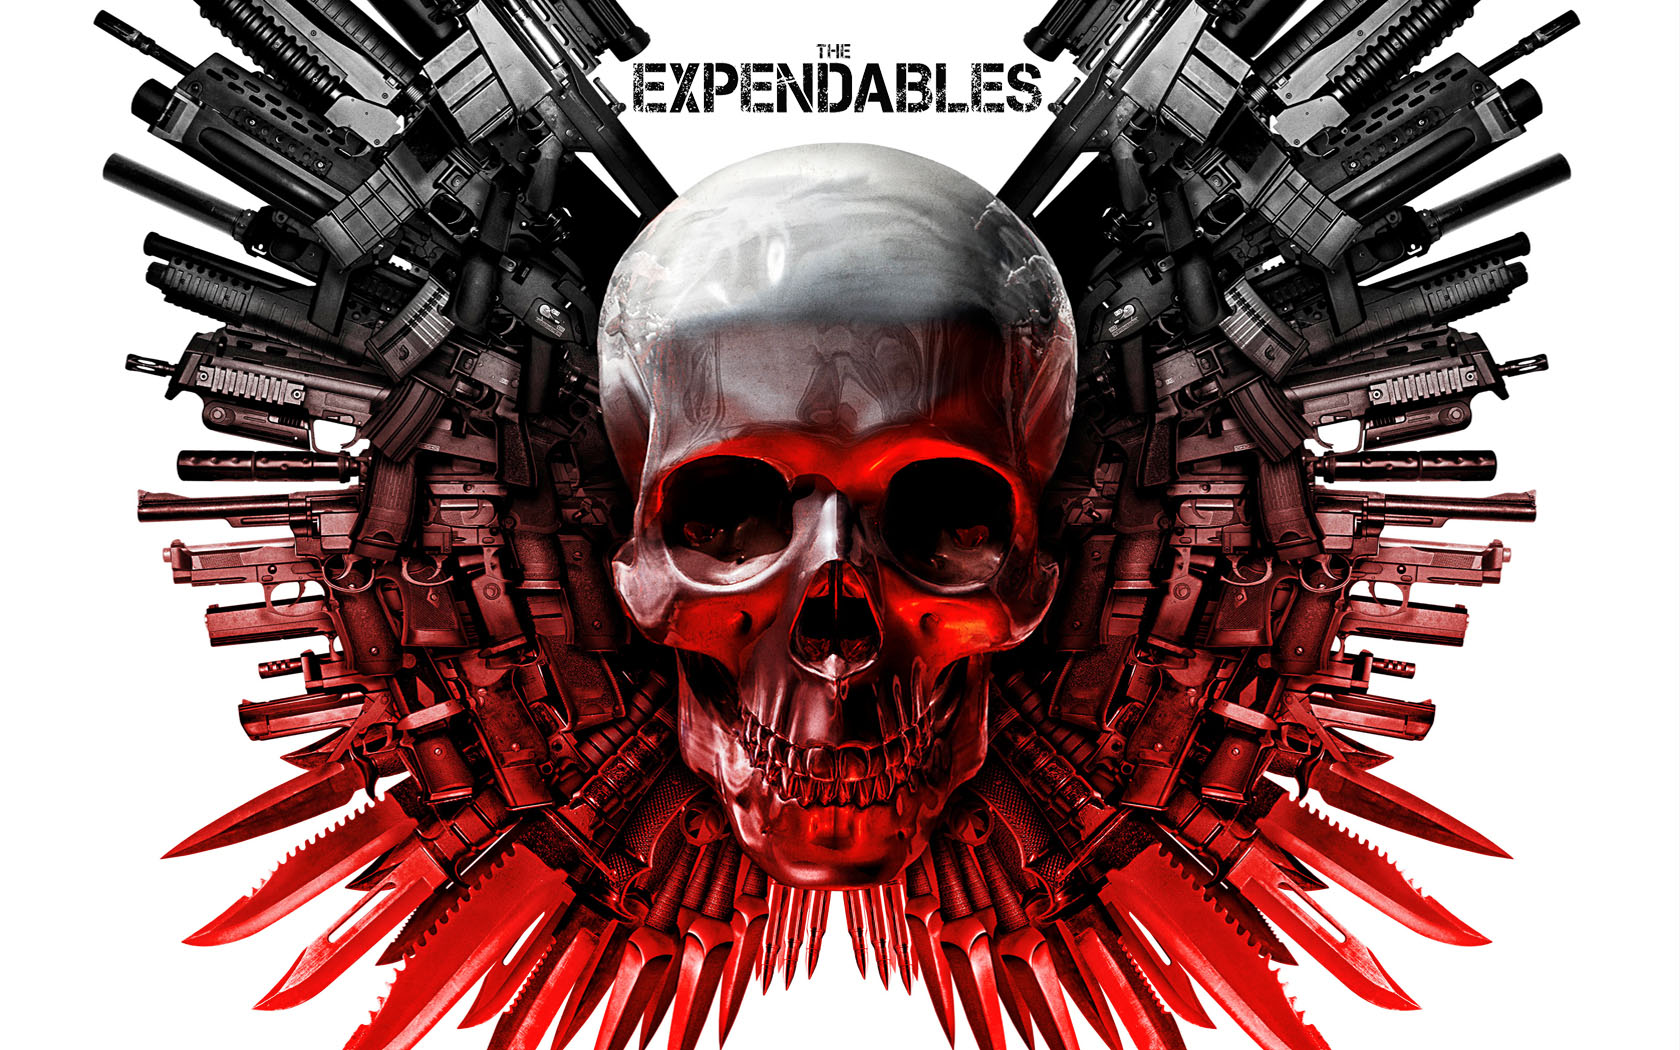 The_Expendables logo desktop wallpaper wallpapers gun action movie film poster